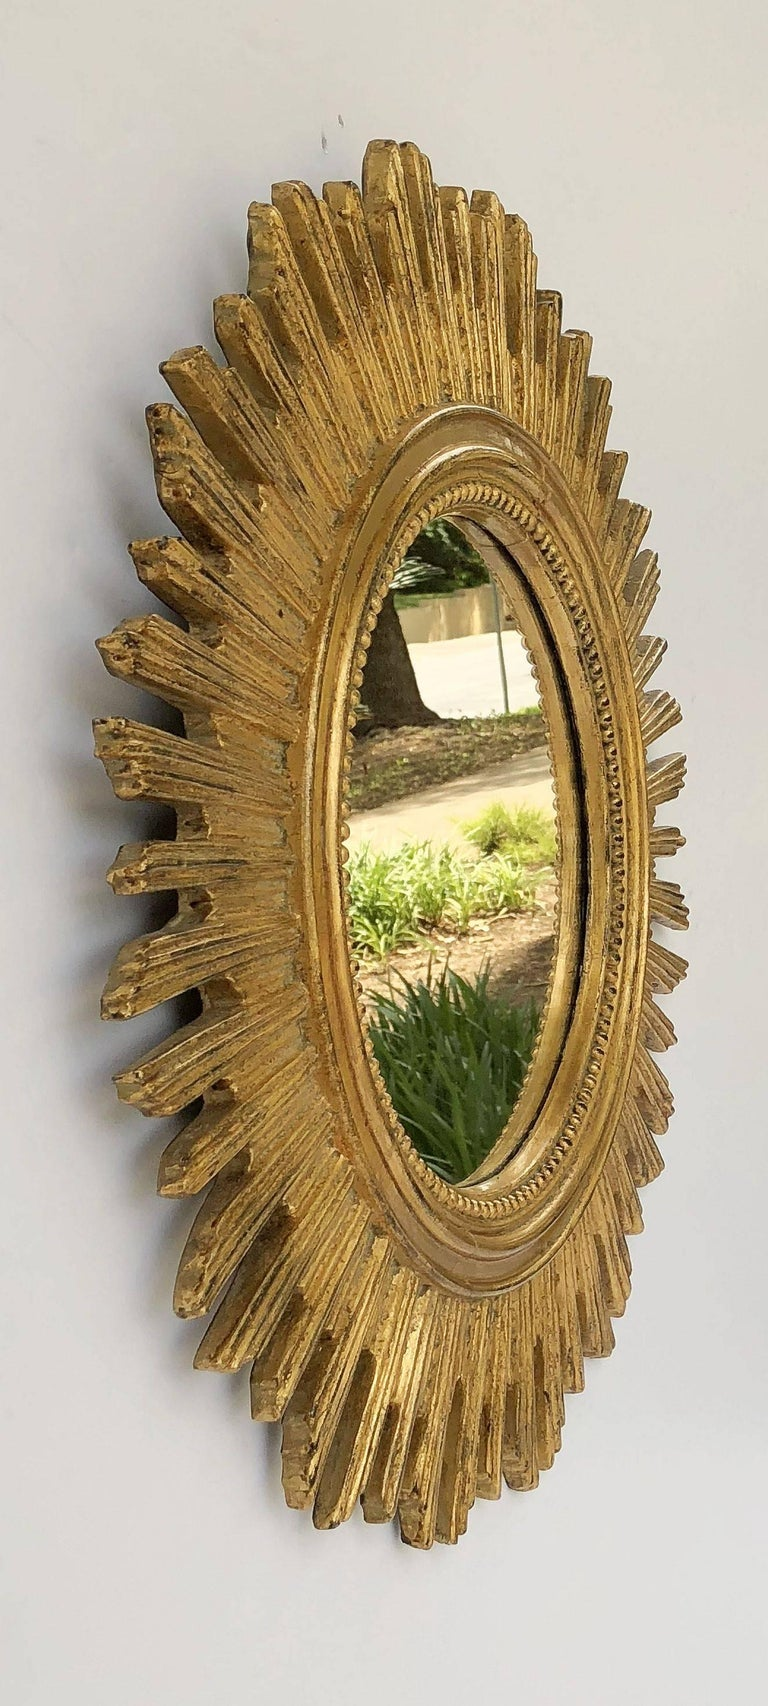 A lovely French gilt sunburst (or starburst) mirror, 20 1/2 inches diameter, with round mirrored glass centre in moulded frame.